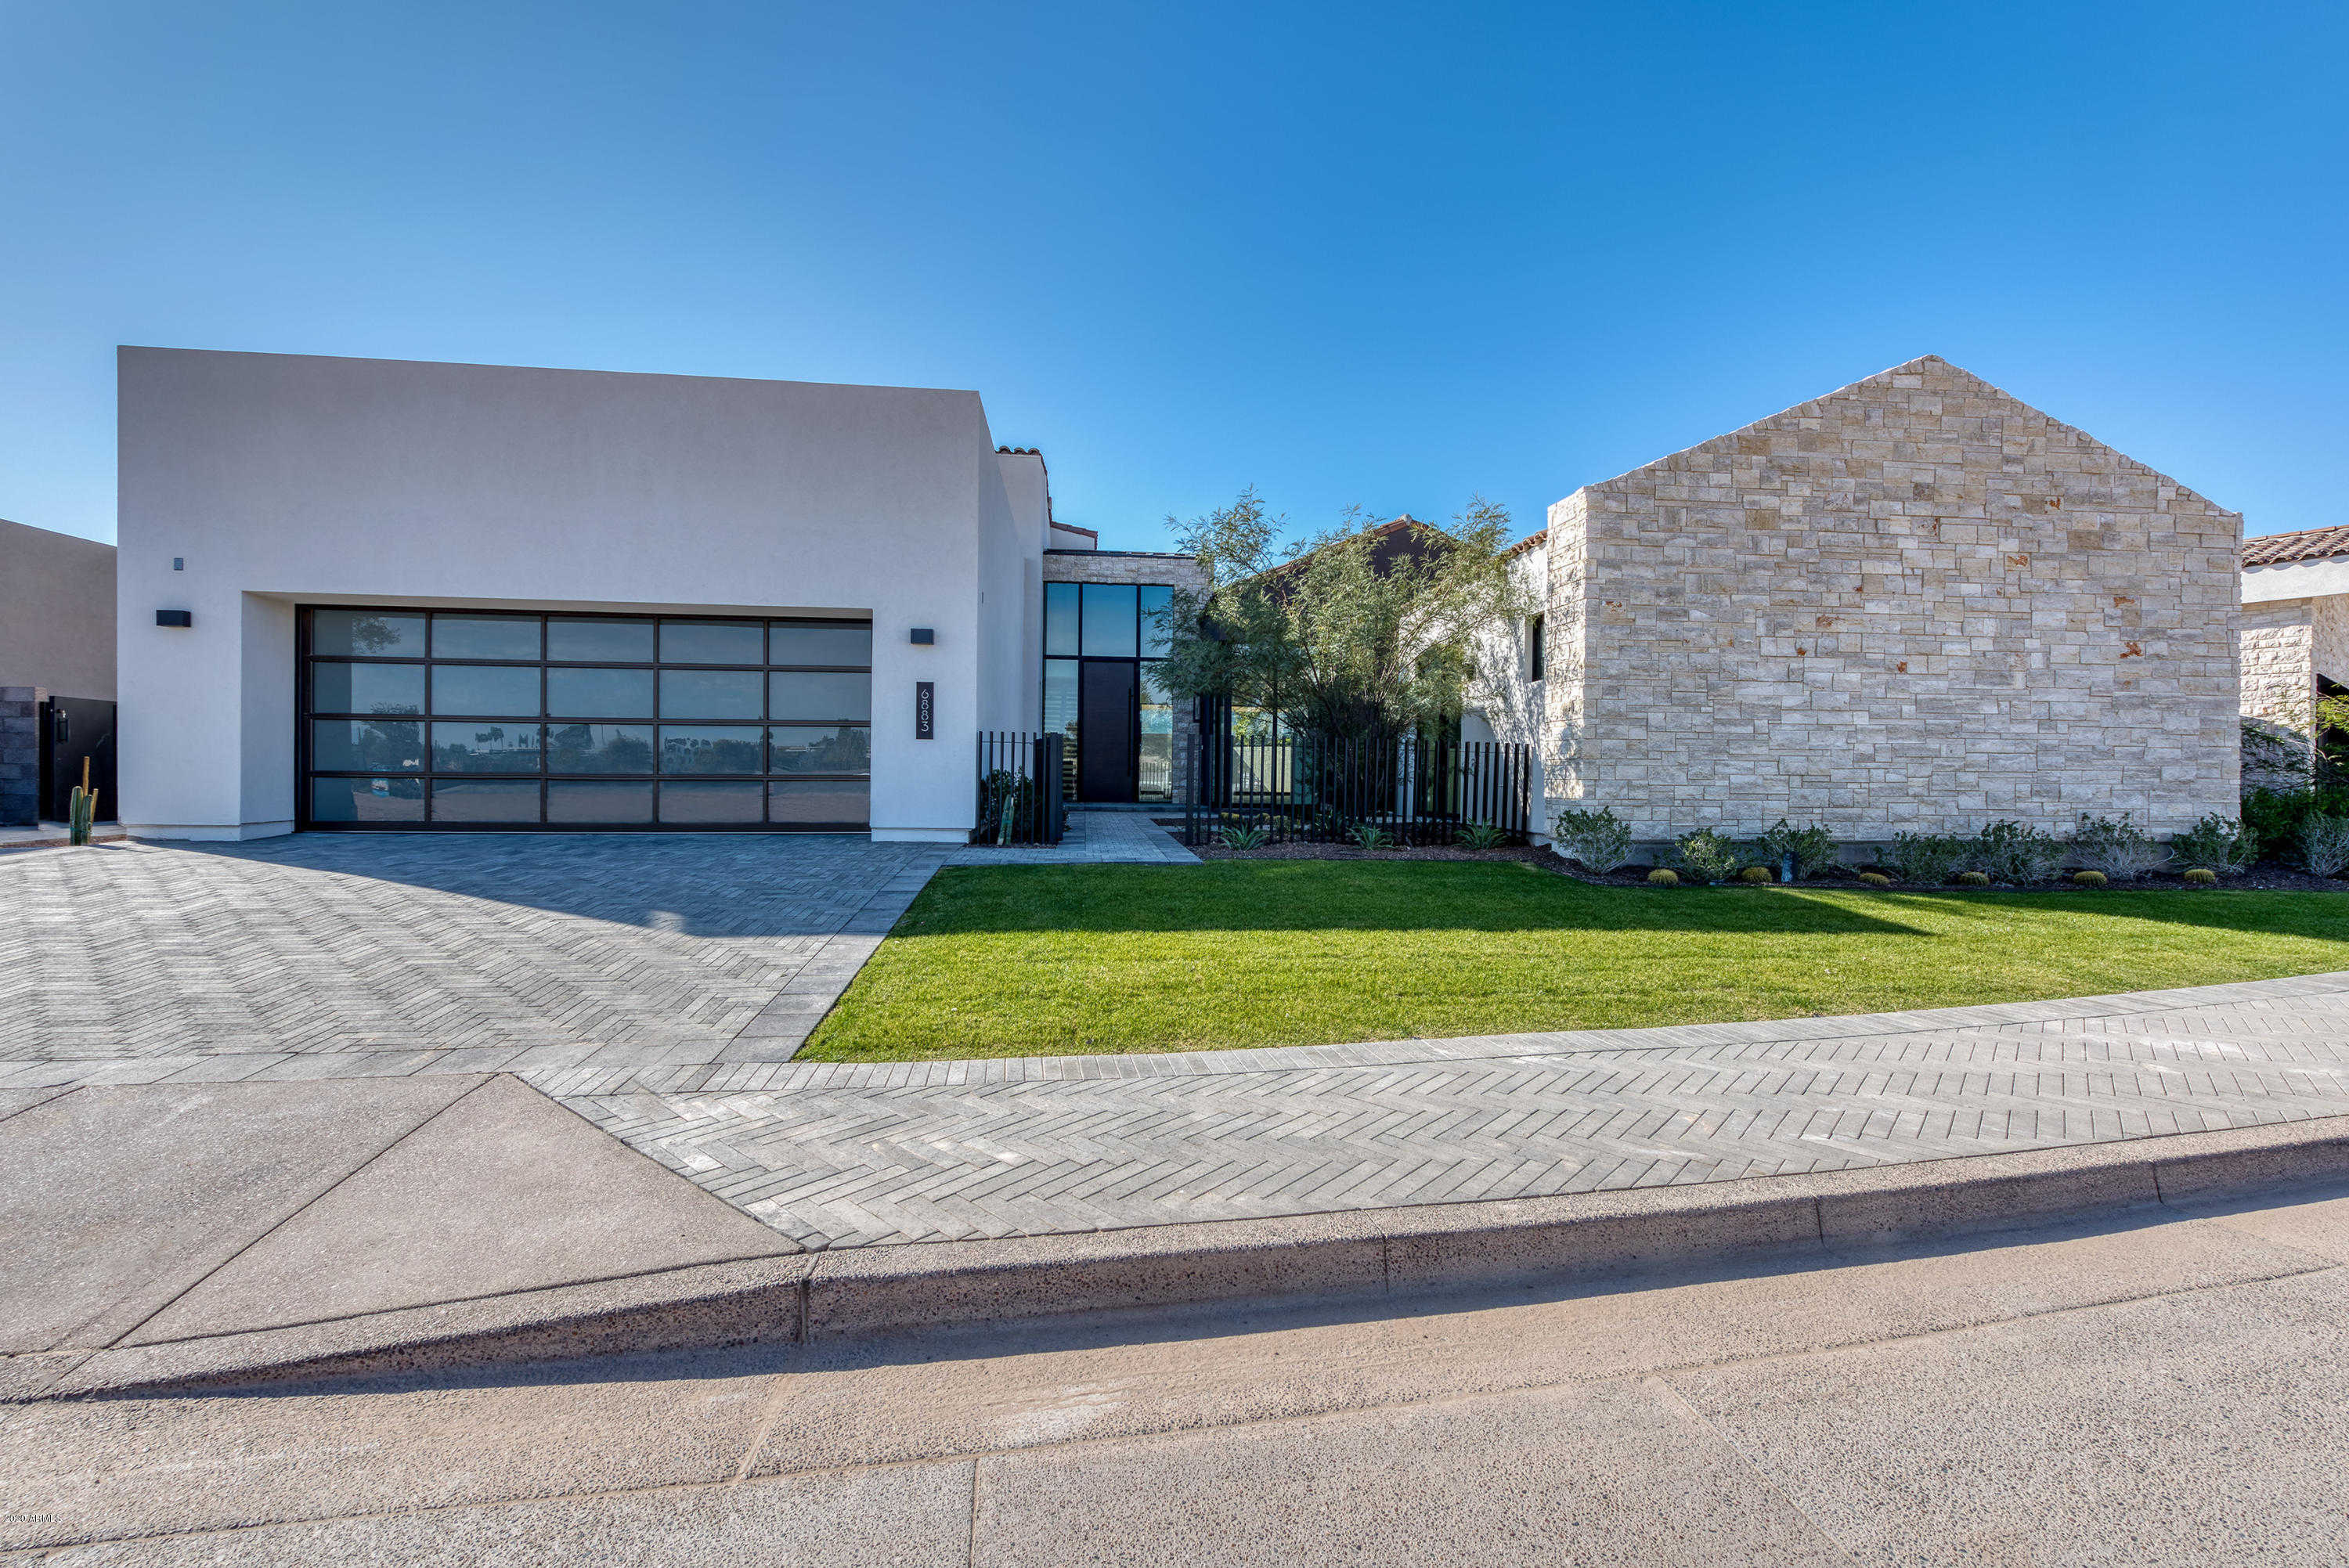 $4,950,000 - 5Br/8Ba - Home for Sale in Lot 61 Ritz-carlton Parcel B Mcr 13606, Paradise Valley